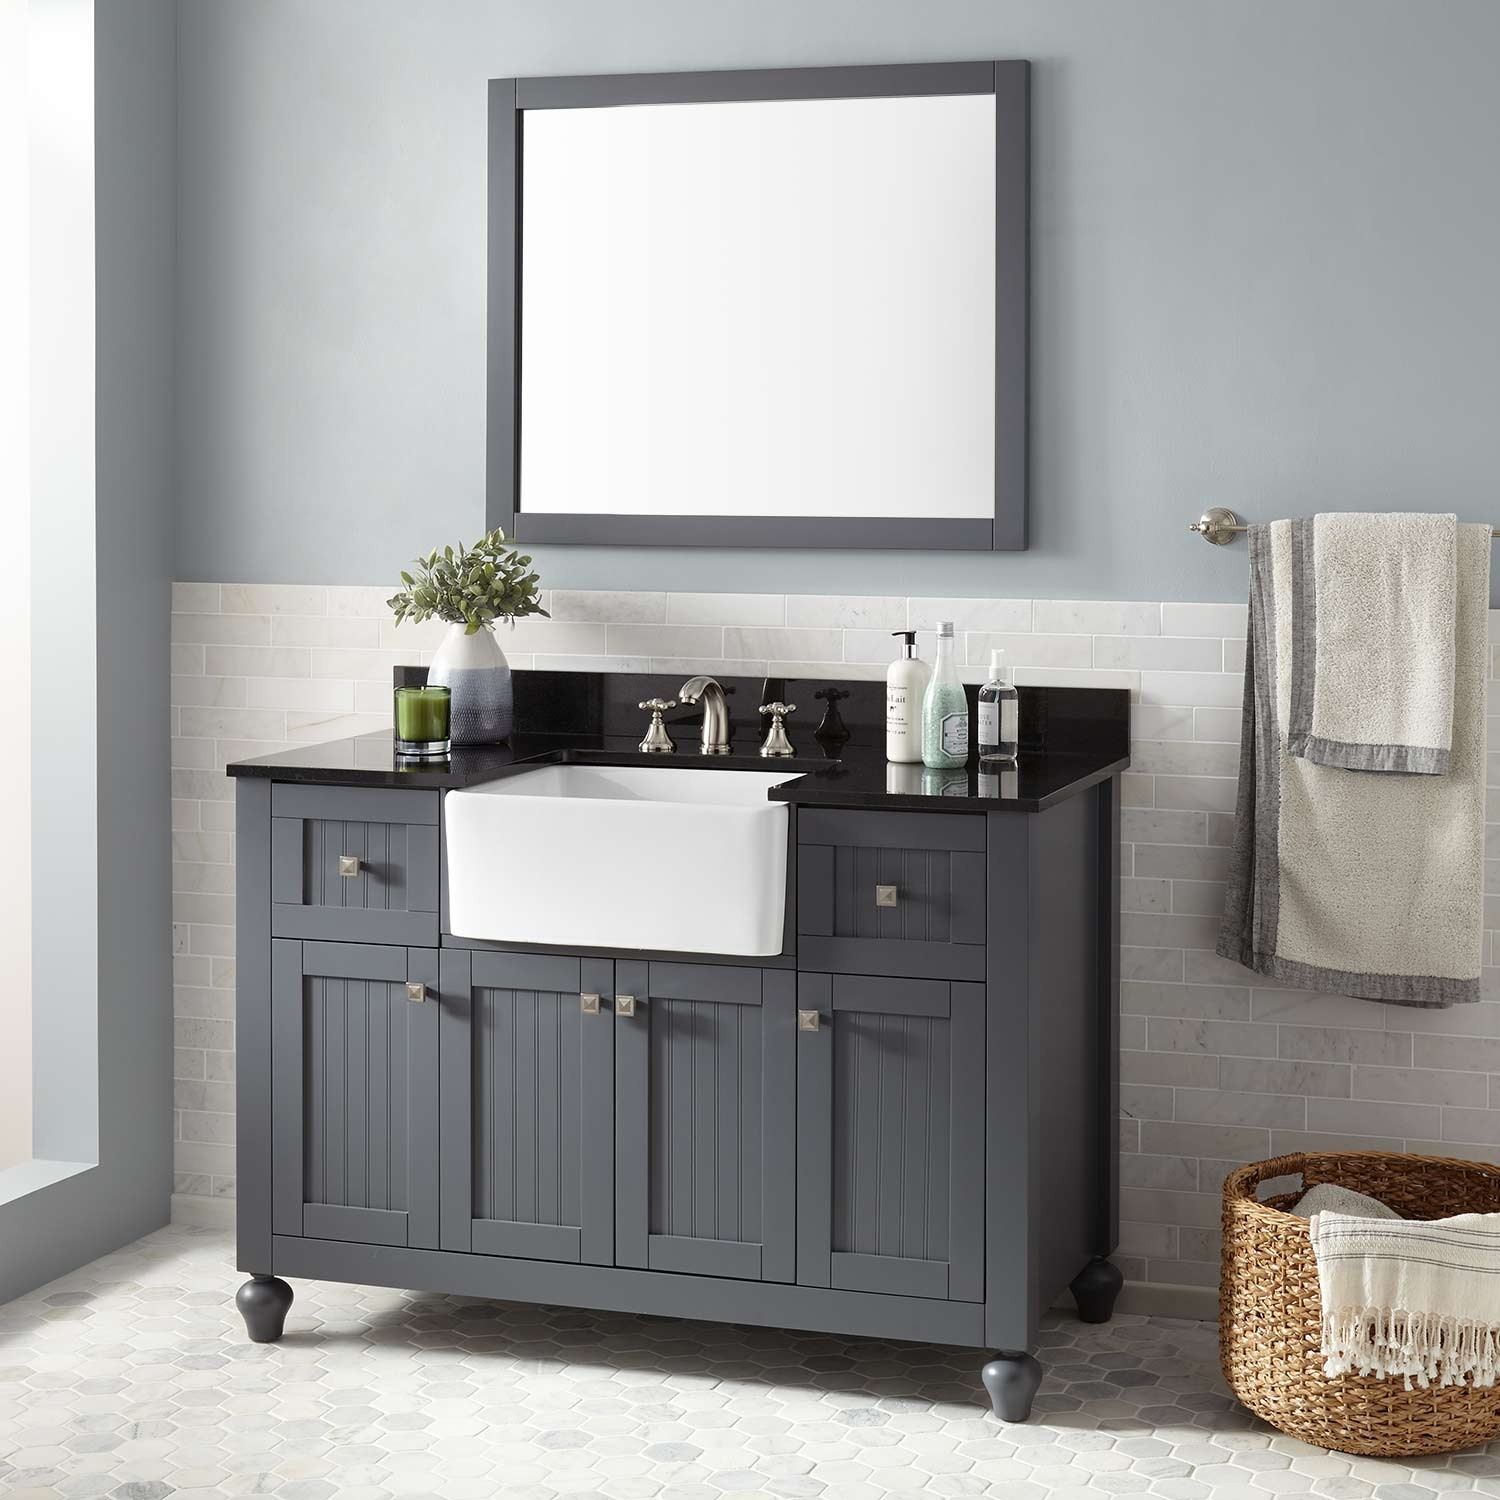 "Epic 48"" Nellie Farmhouse Sink Vanity - Dark Gray - Bathroom in Dark Bathroom Vanity"